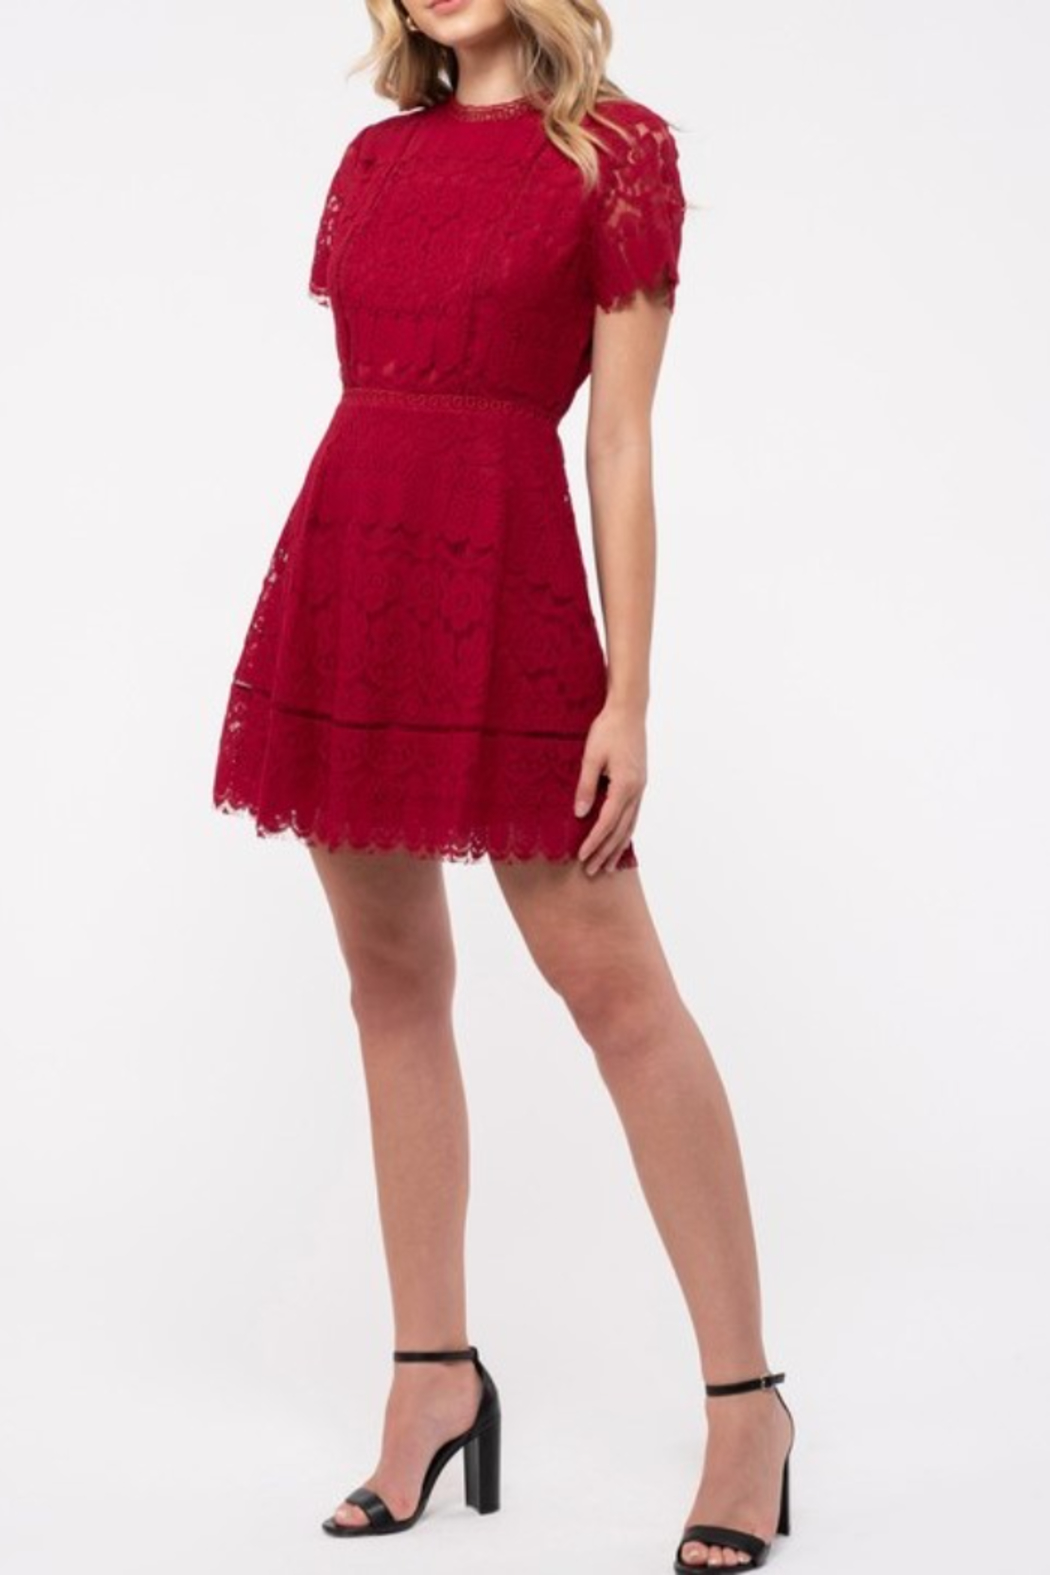 blu Pepper  Red lace dress with short sleeves and fitted body - Main Image